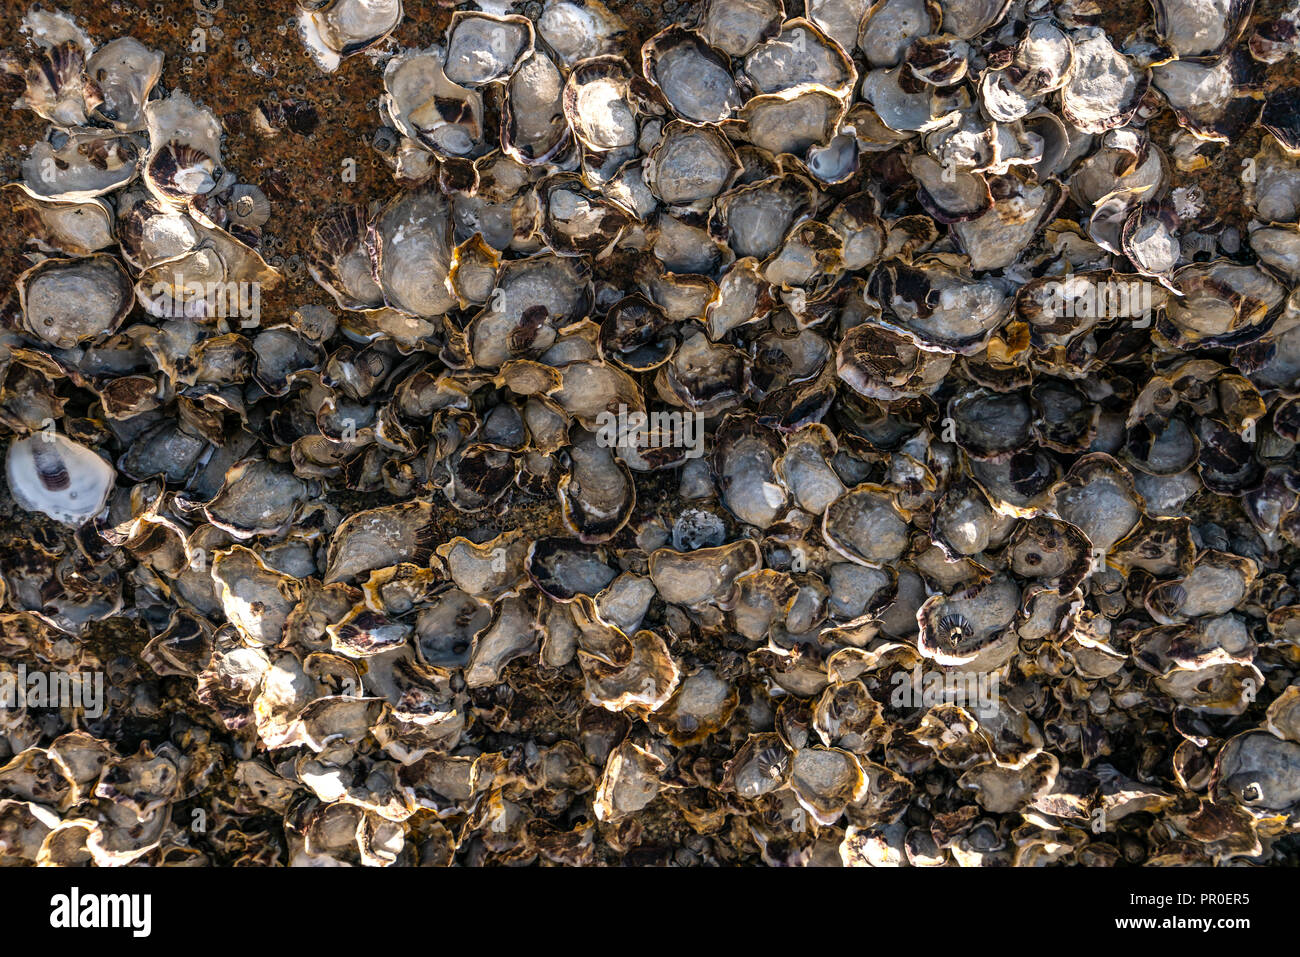 Oyster Shell carcass stuck on rocks background Stock Photo